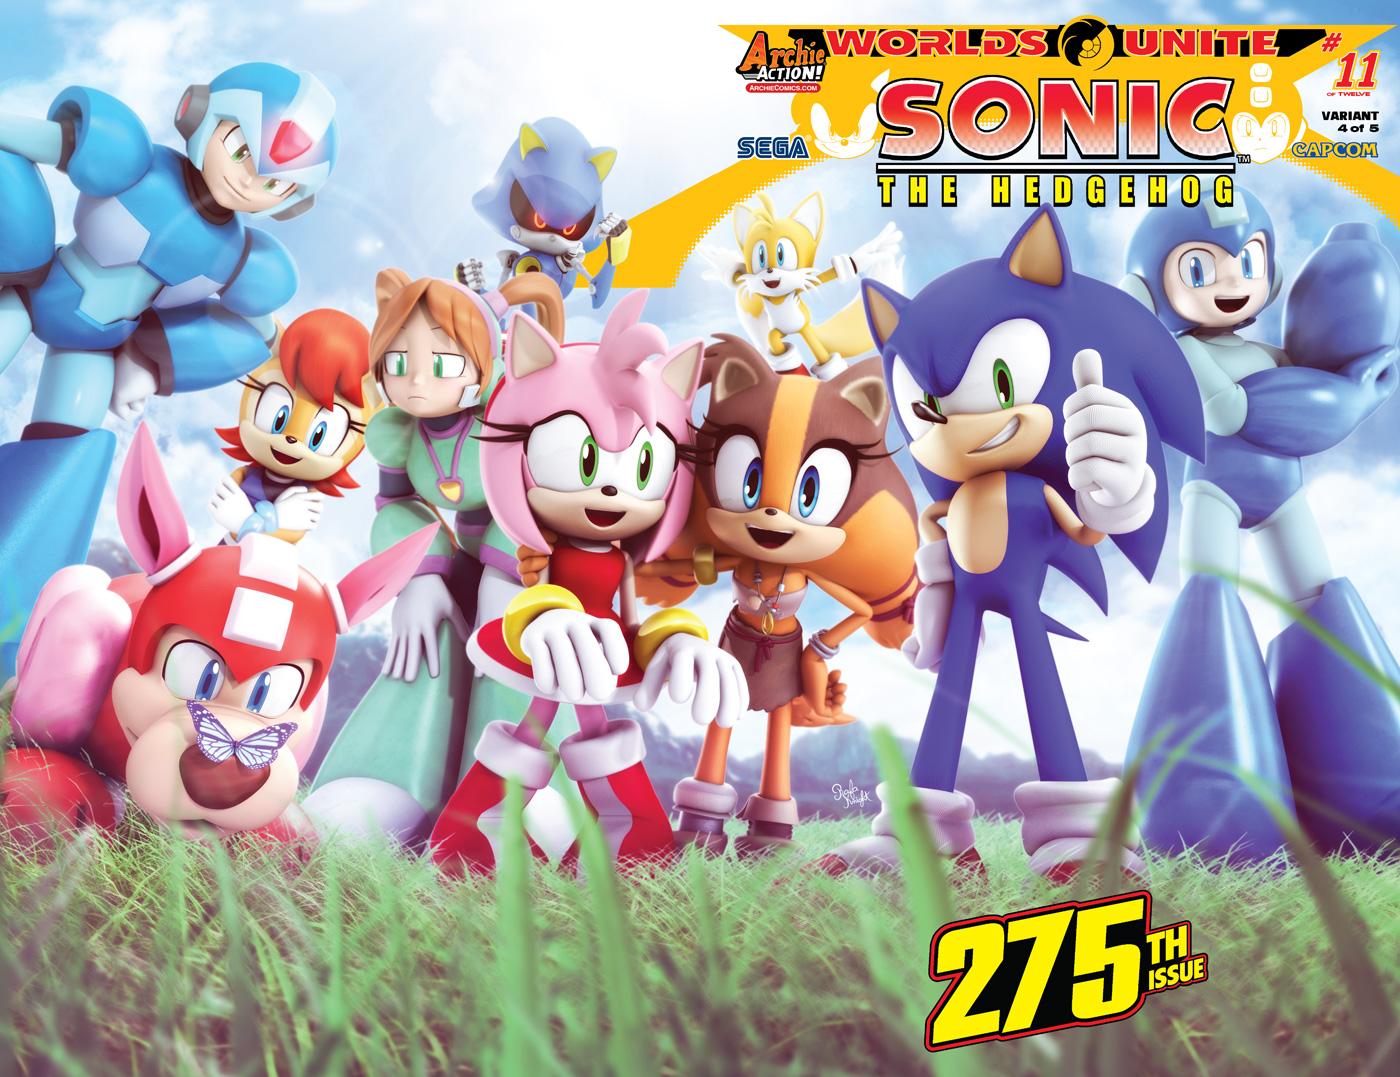 Preview For Sonic The Hedgehog 275 Worlds Unite Part 11 The Mega Man Network